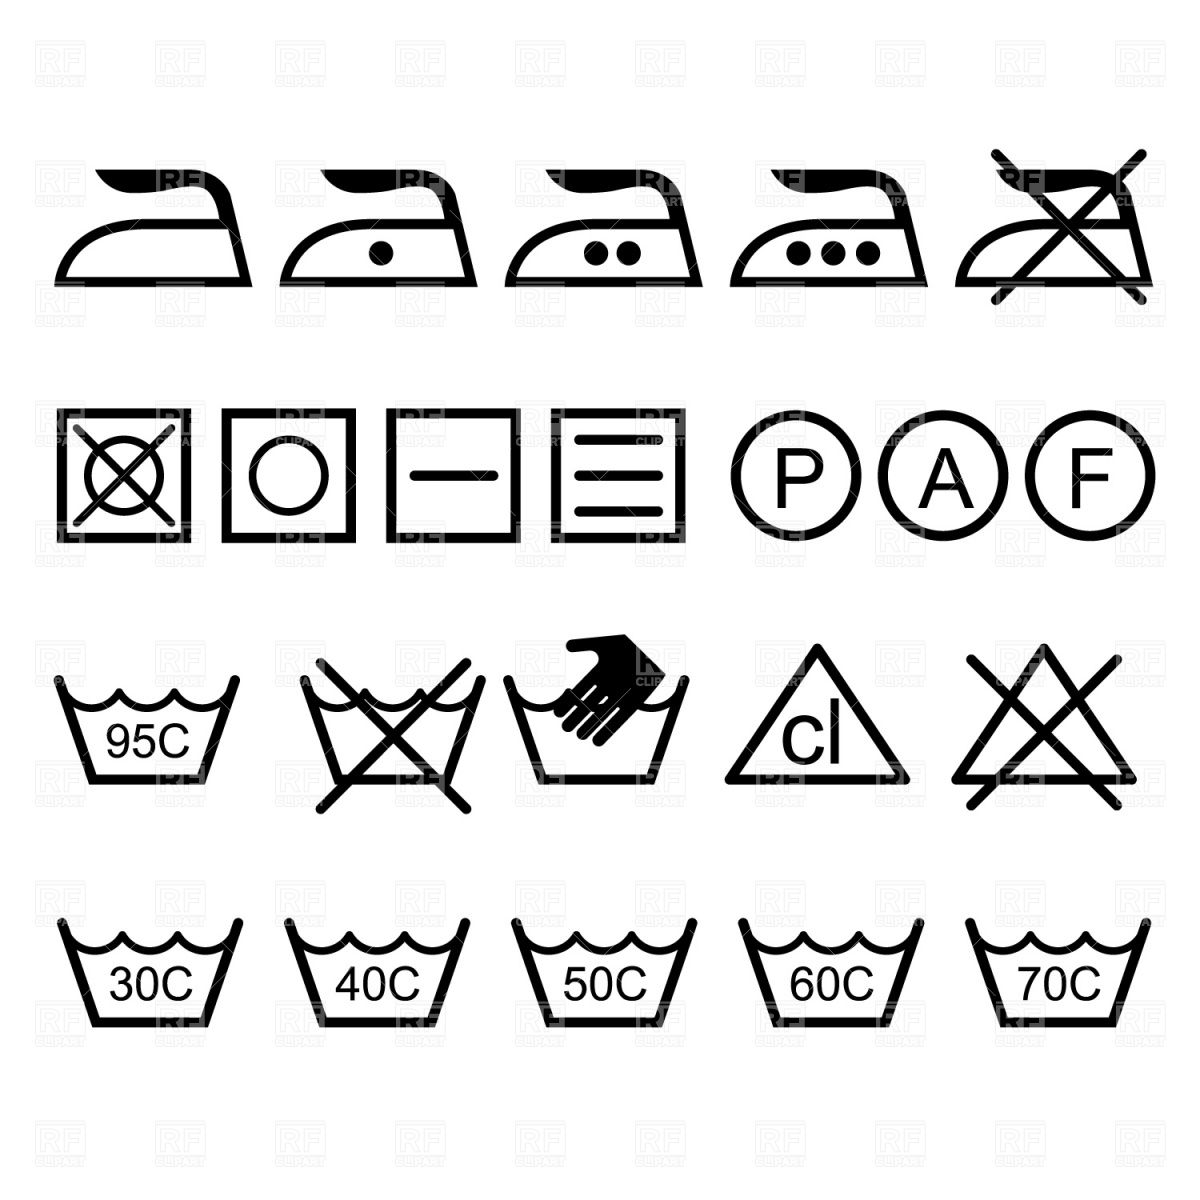 Imgrfclipart image big 97 4c 52 laundry icons download royalty imgrfclipart image big 97 4c 52 laundry icons biocorpaavc Image collections